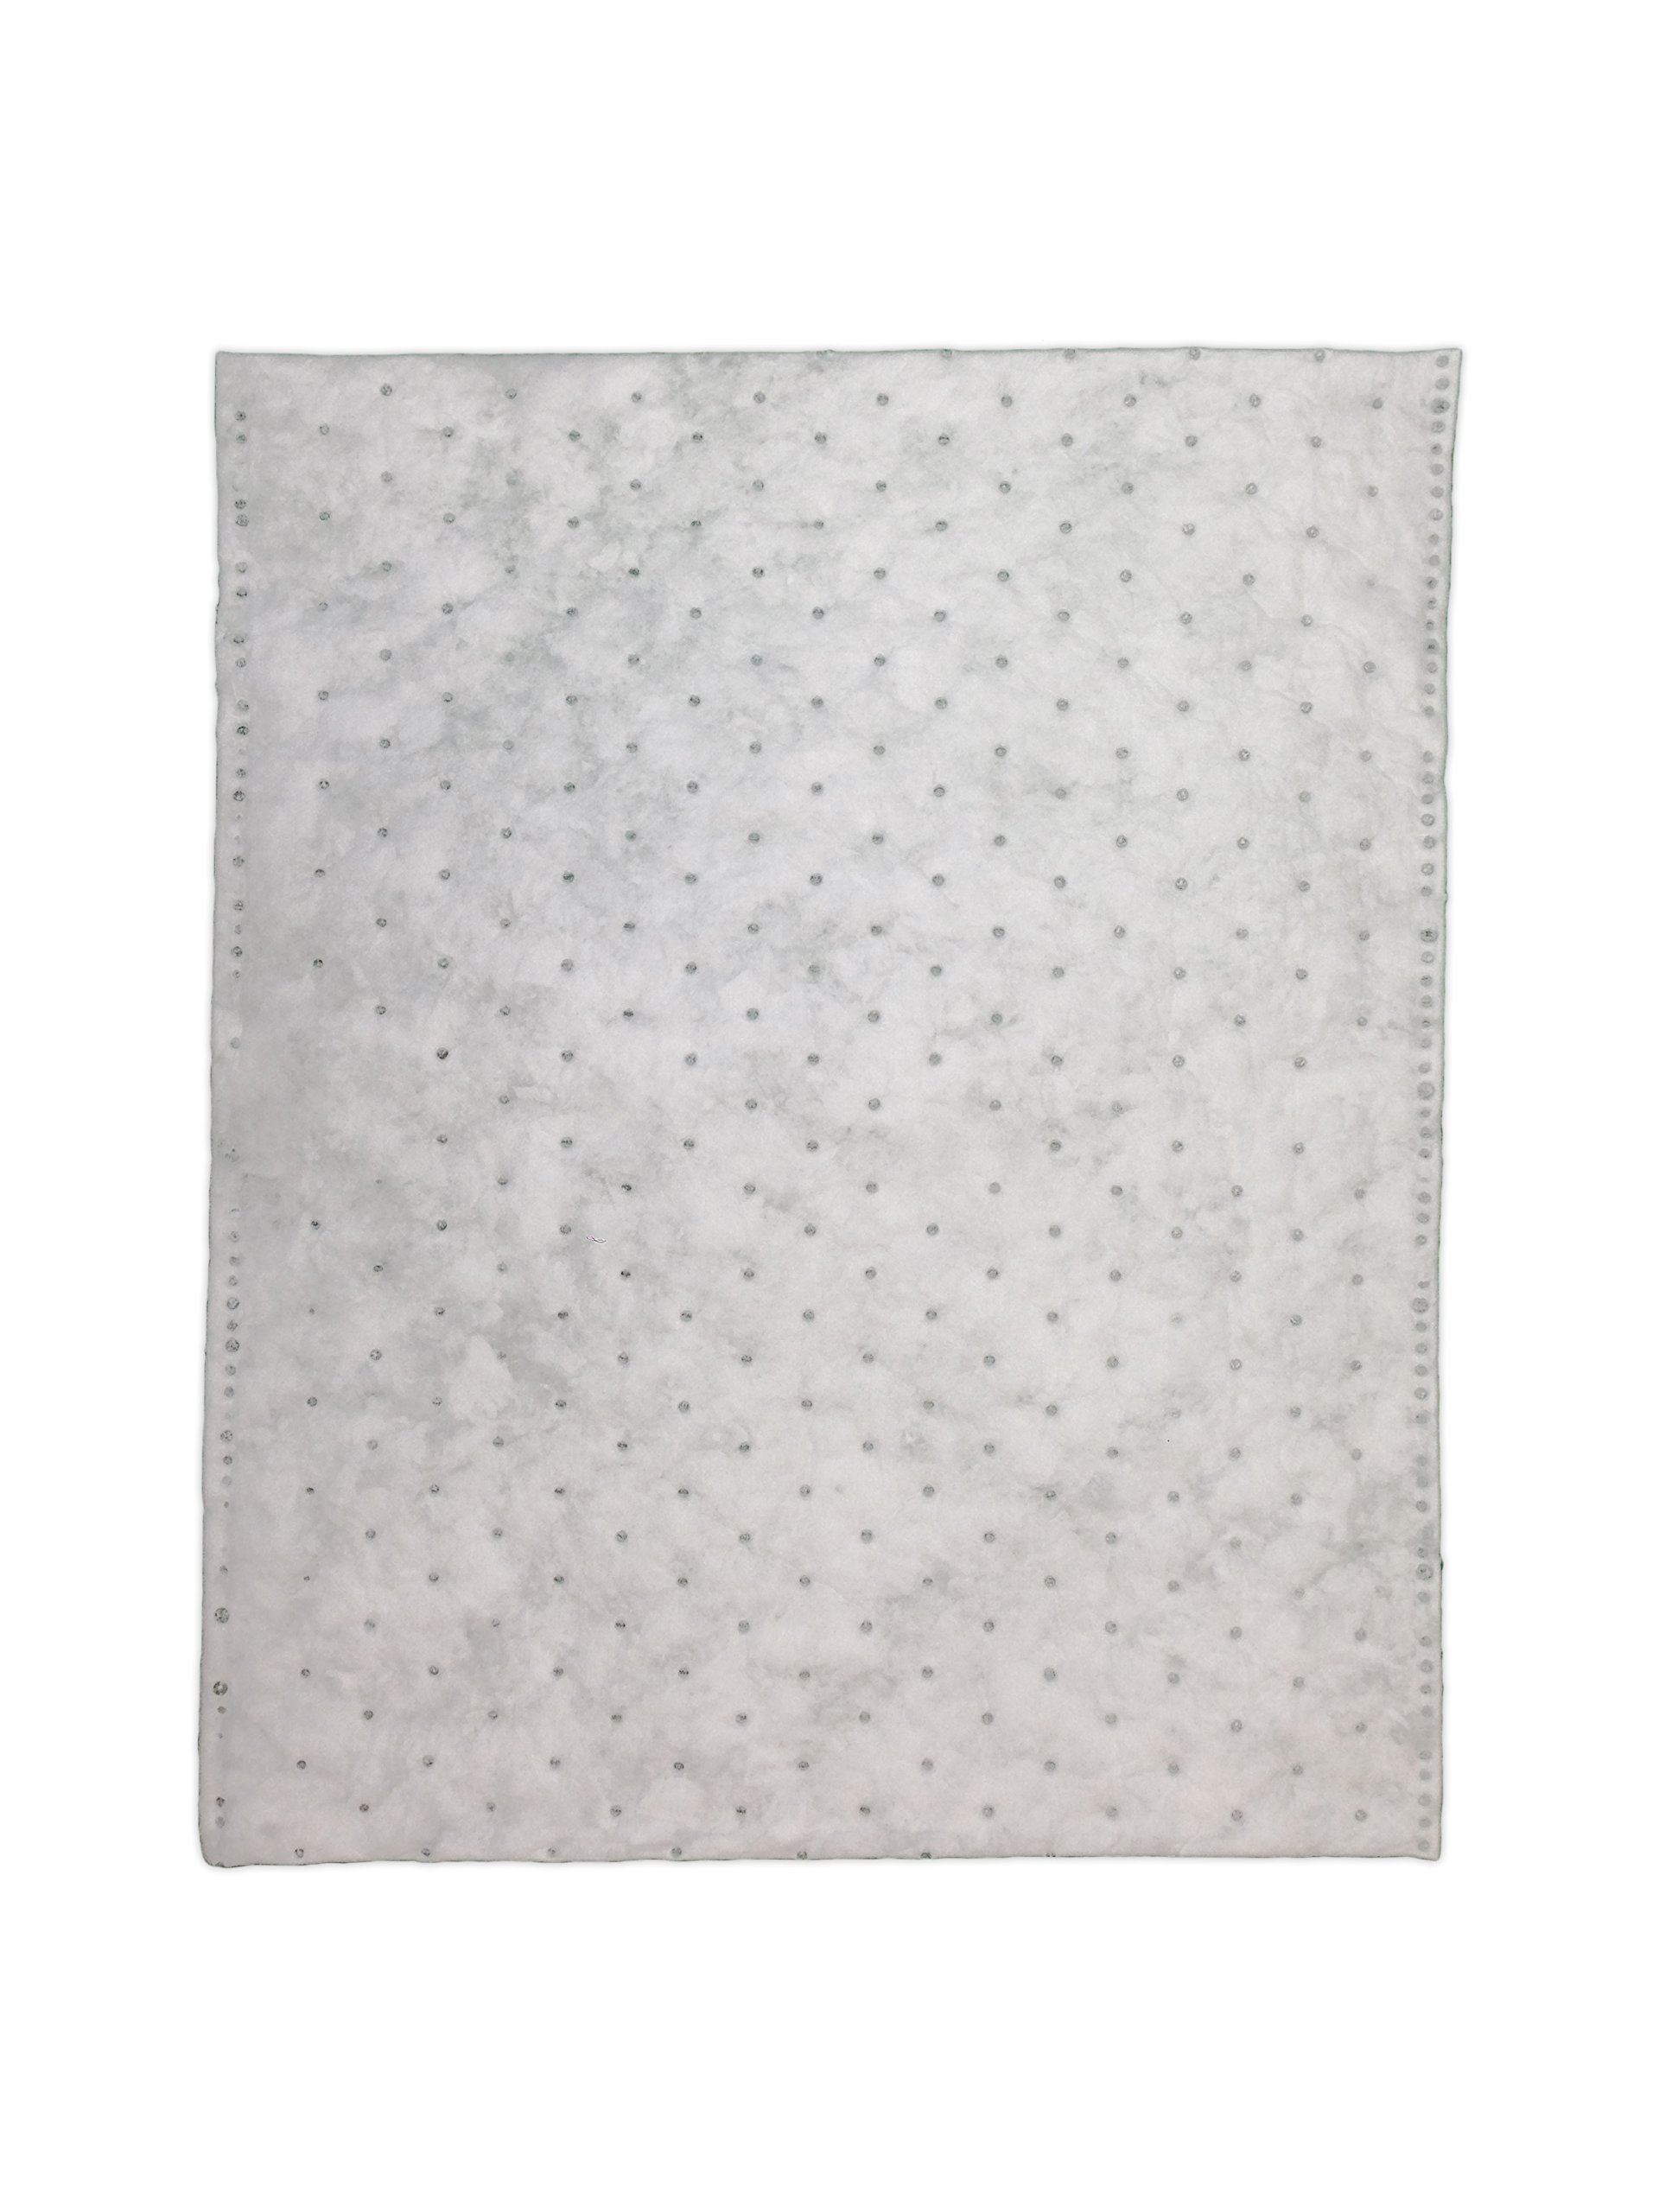 15 in. x 18 in. ¼ gal. Oil Absorbent Pad (100-Pack)